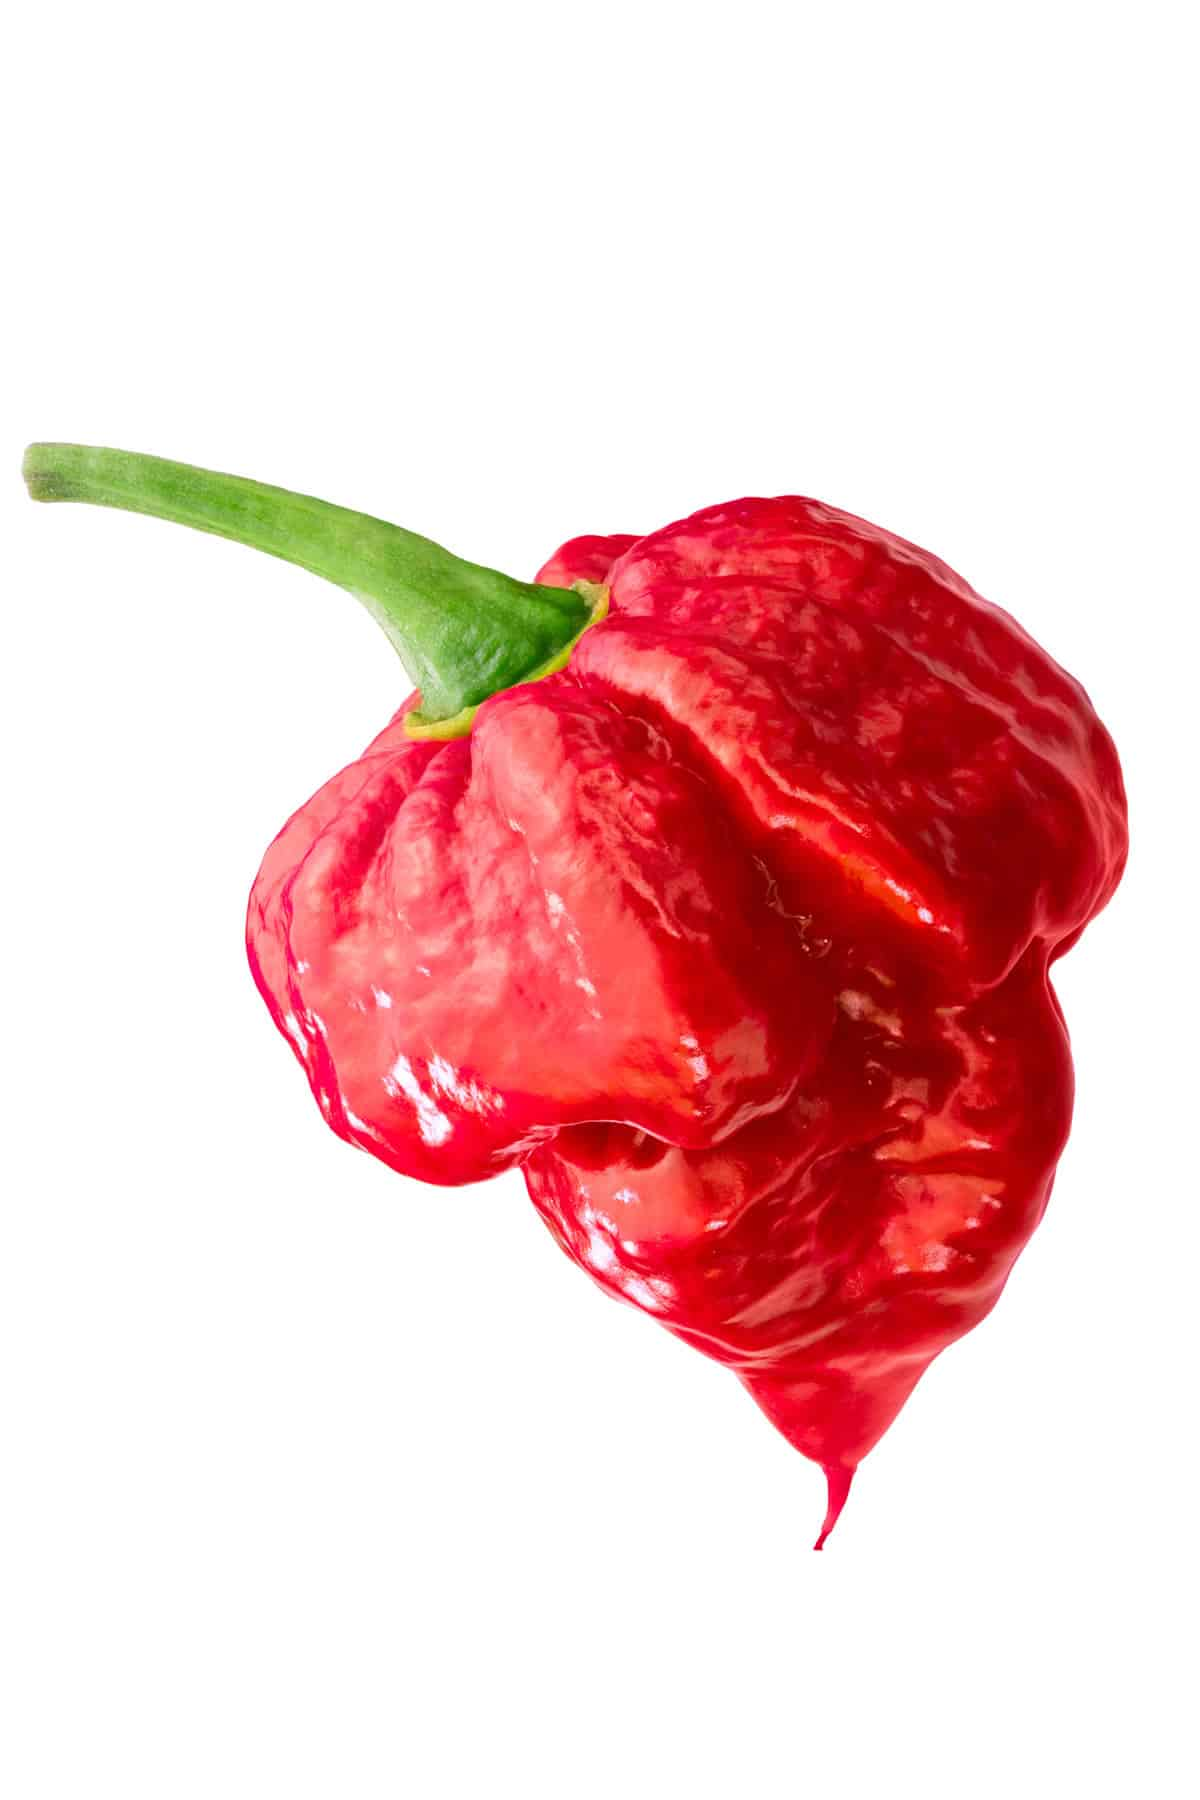 Trinidad Scorpion Butch T Pepper